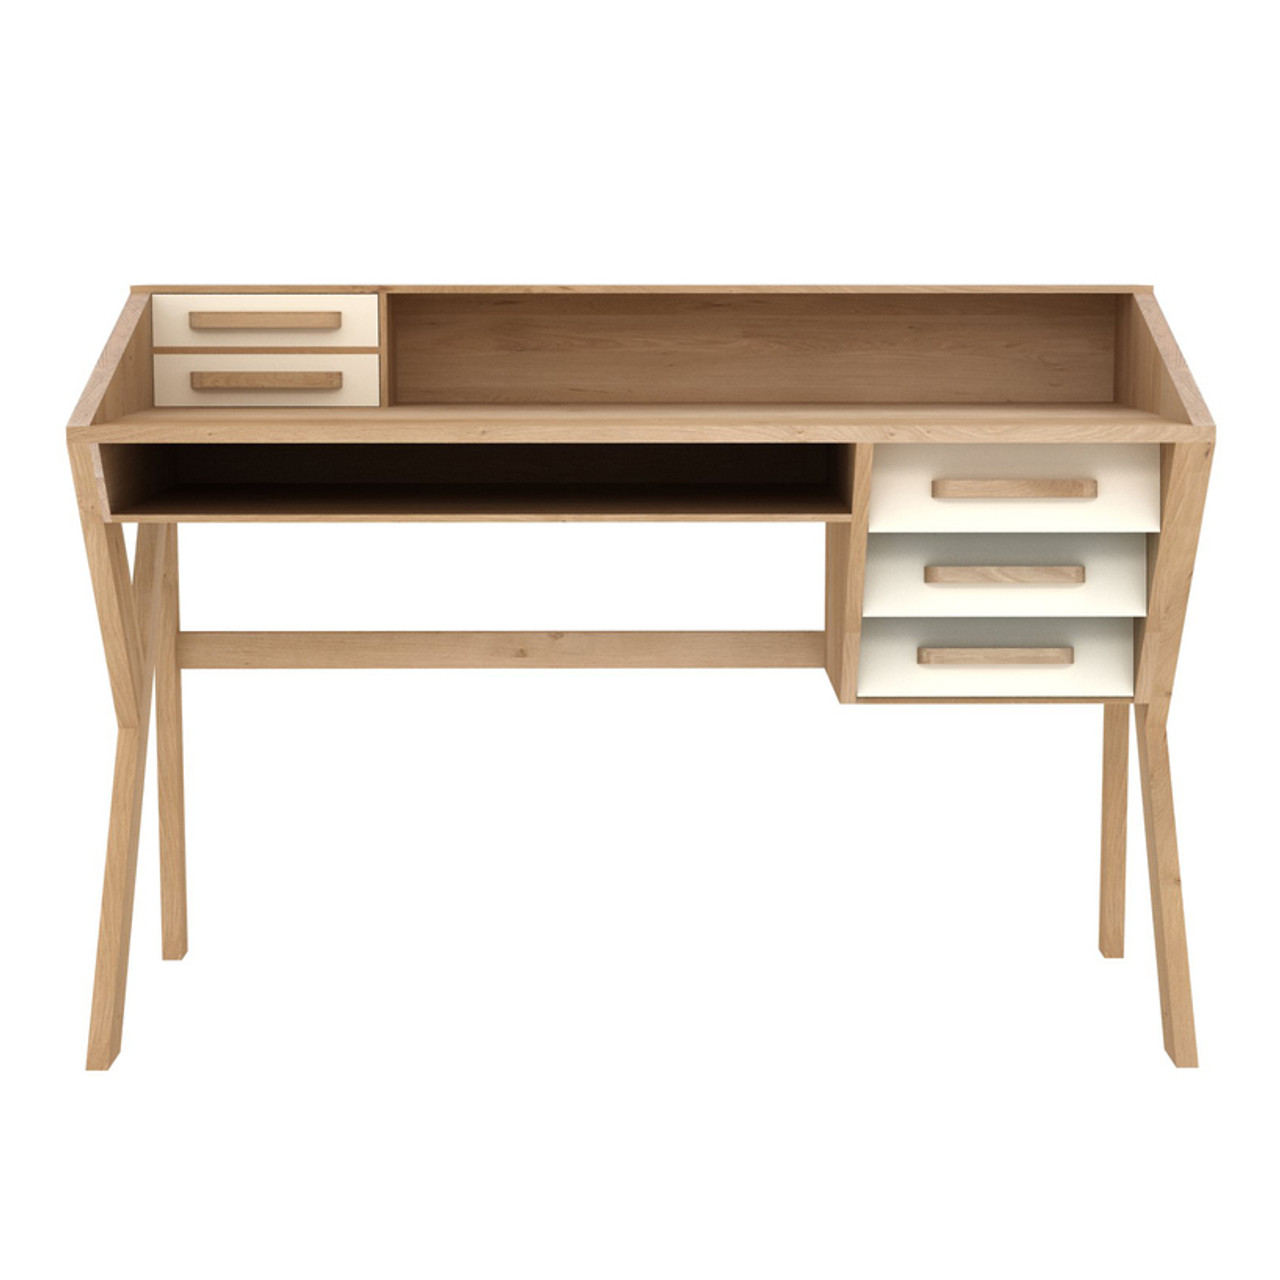 Kota Oak Origami Desk with Storage